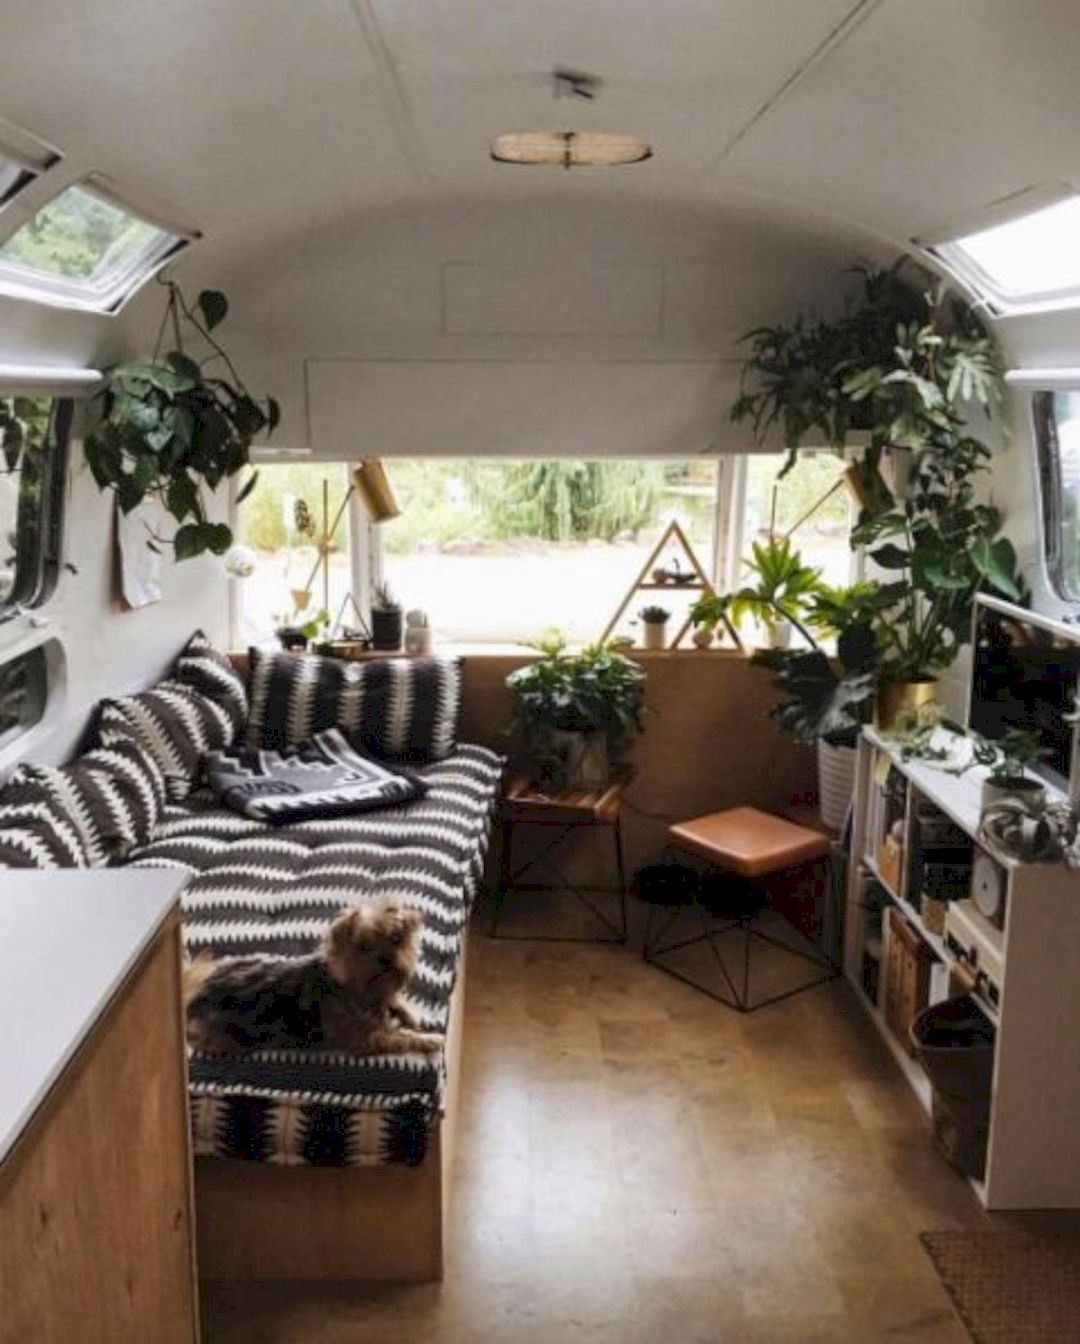 15 Campervan Interior Design Ideas for a Cozy Camping Time ...